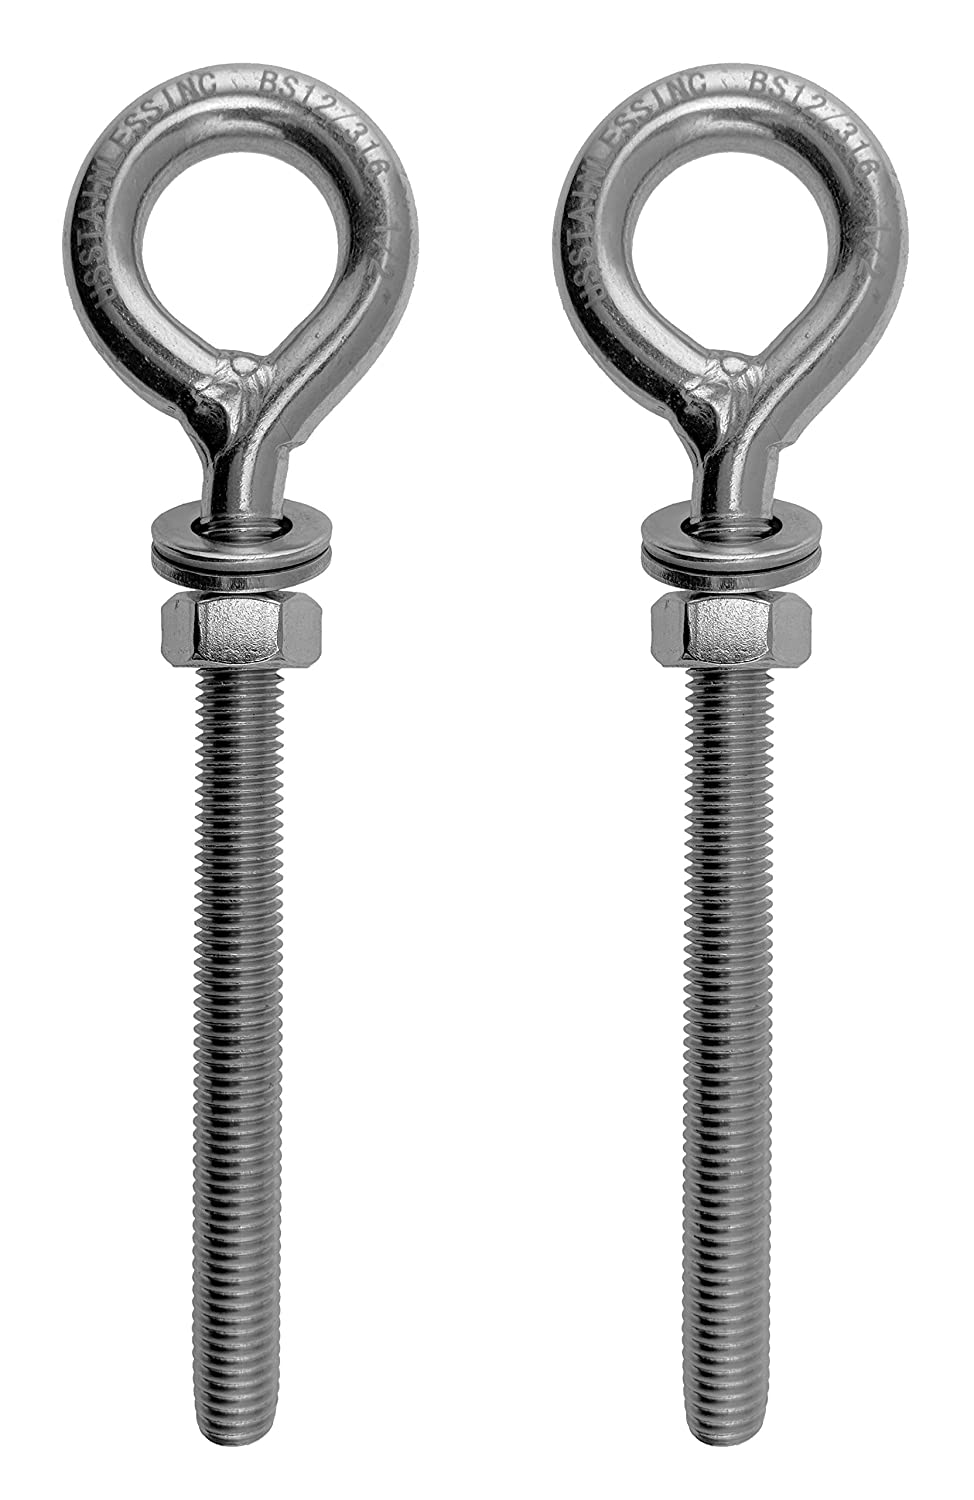 Marine Grade 1//2 x 4 2 Pieces Stainless Steel 316 M12 Eye Bolt 12mm x 100mm